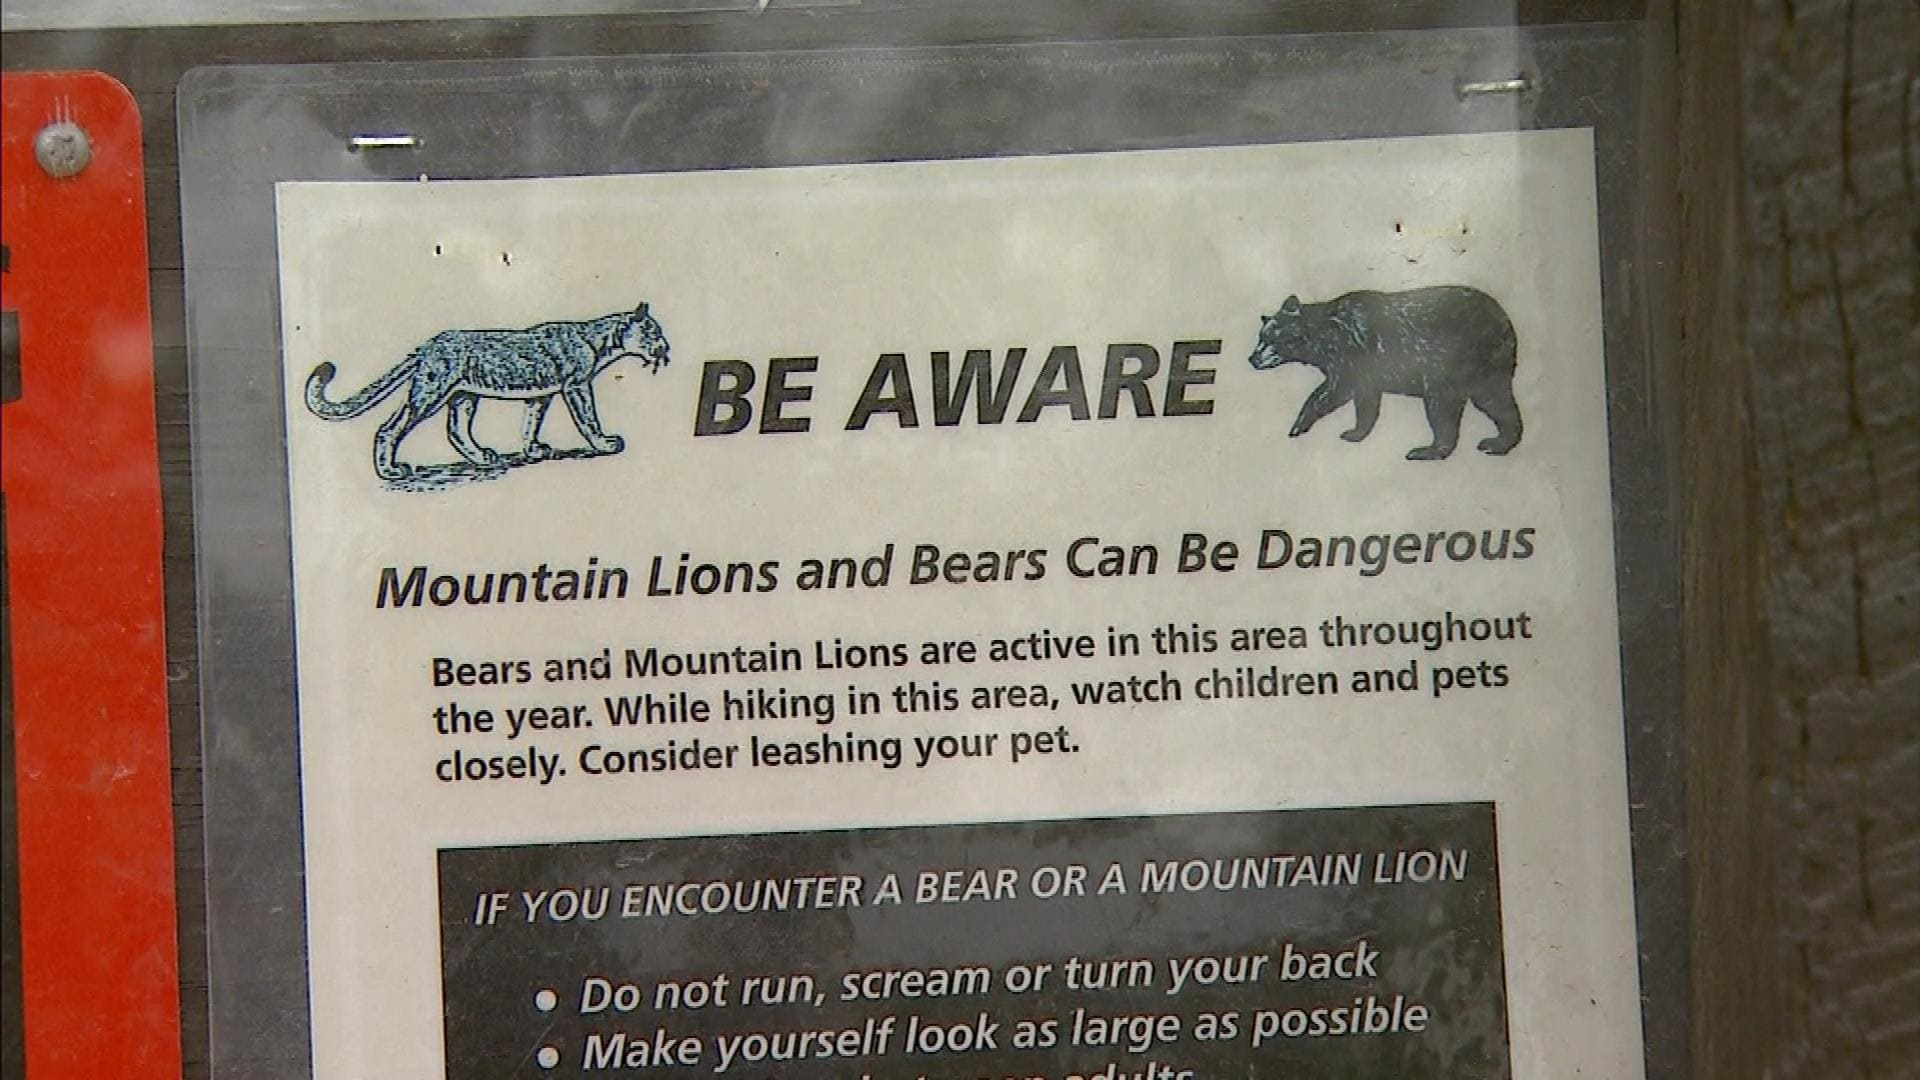 Woman and Dog Chased in Park by Bear in Colorado